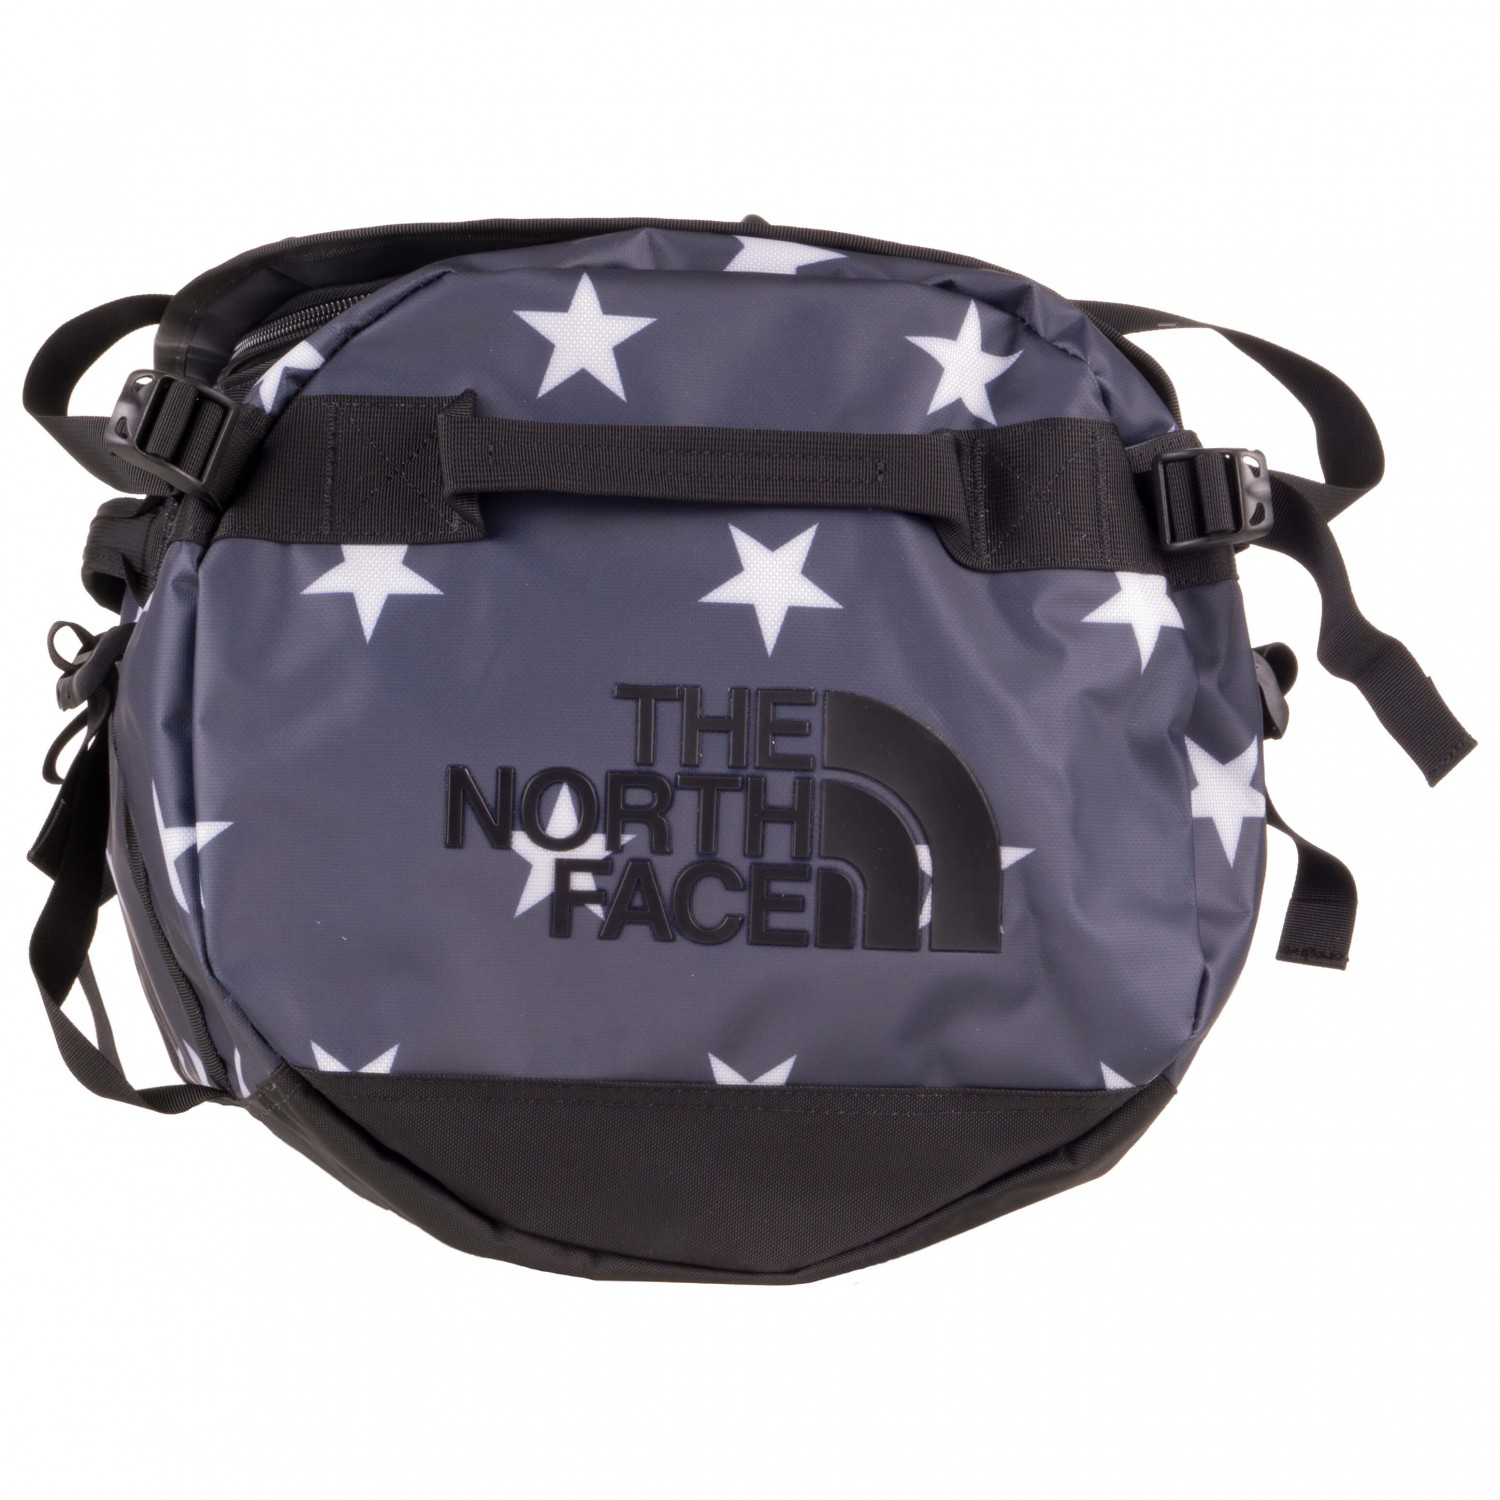 the north face ic base camp duffel 71 sac de voyage achat en ligne. Black Bedroom Furniture Sets. Home Design Ideas